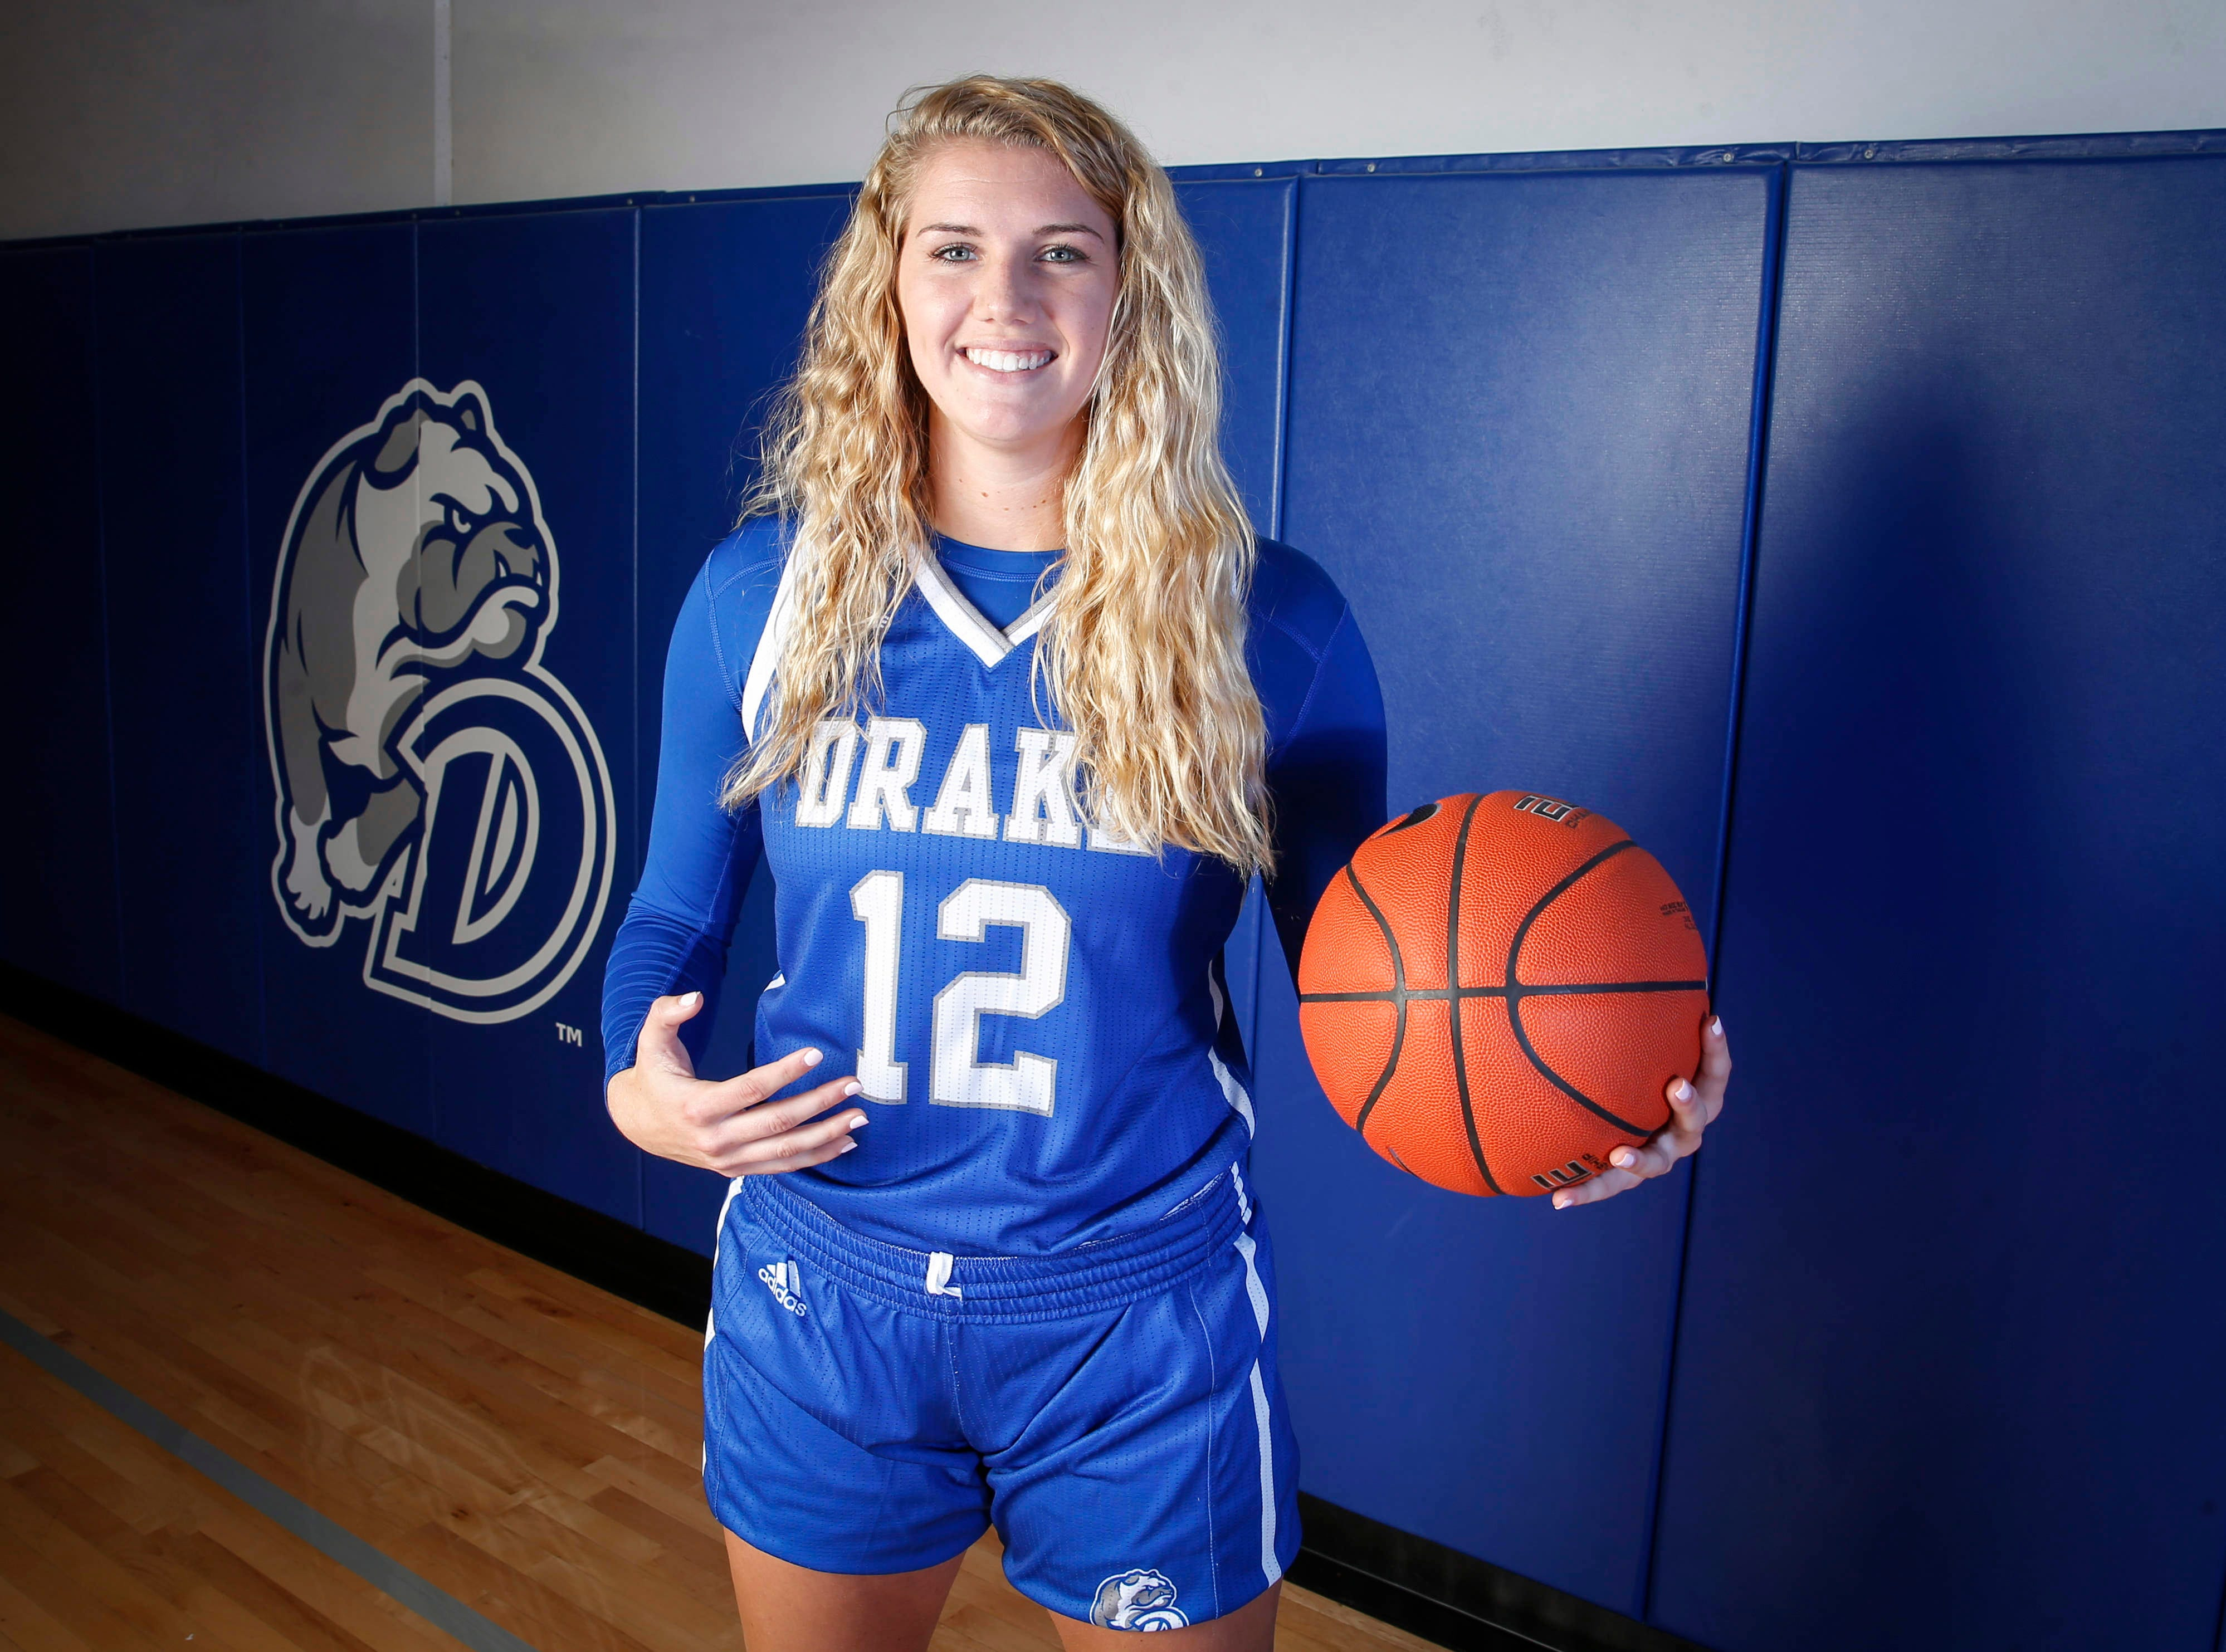 Photos: Meet the 2019-20 Drake Women's Basketball team